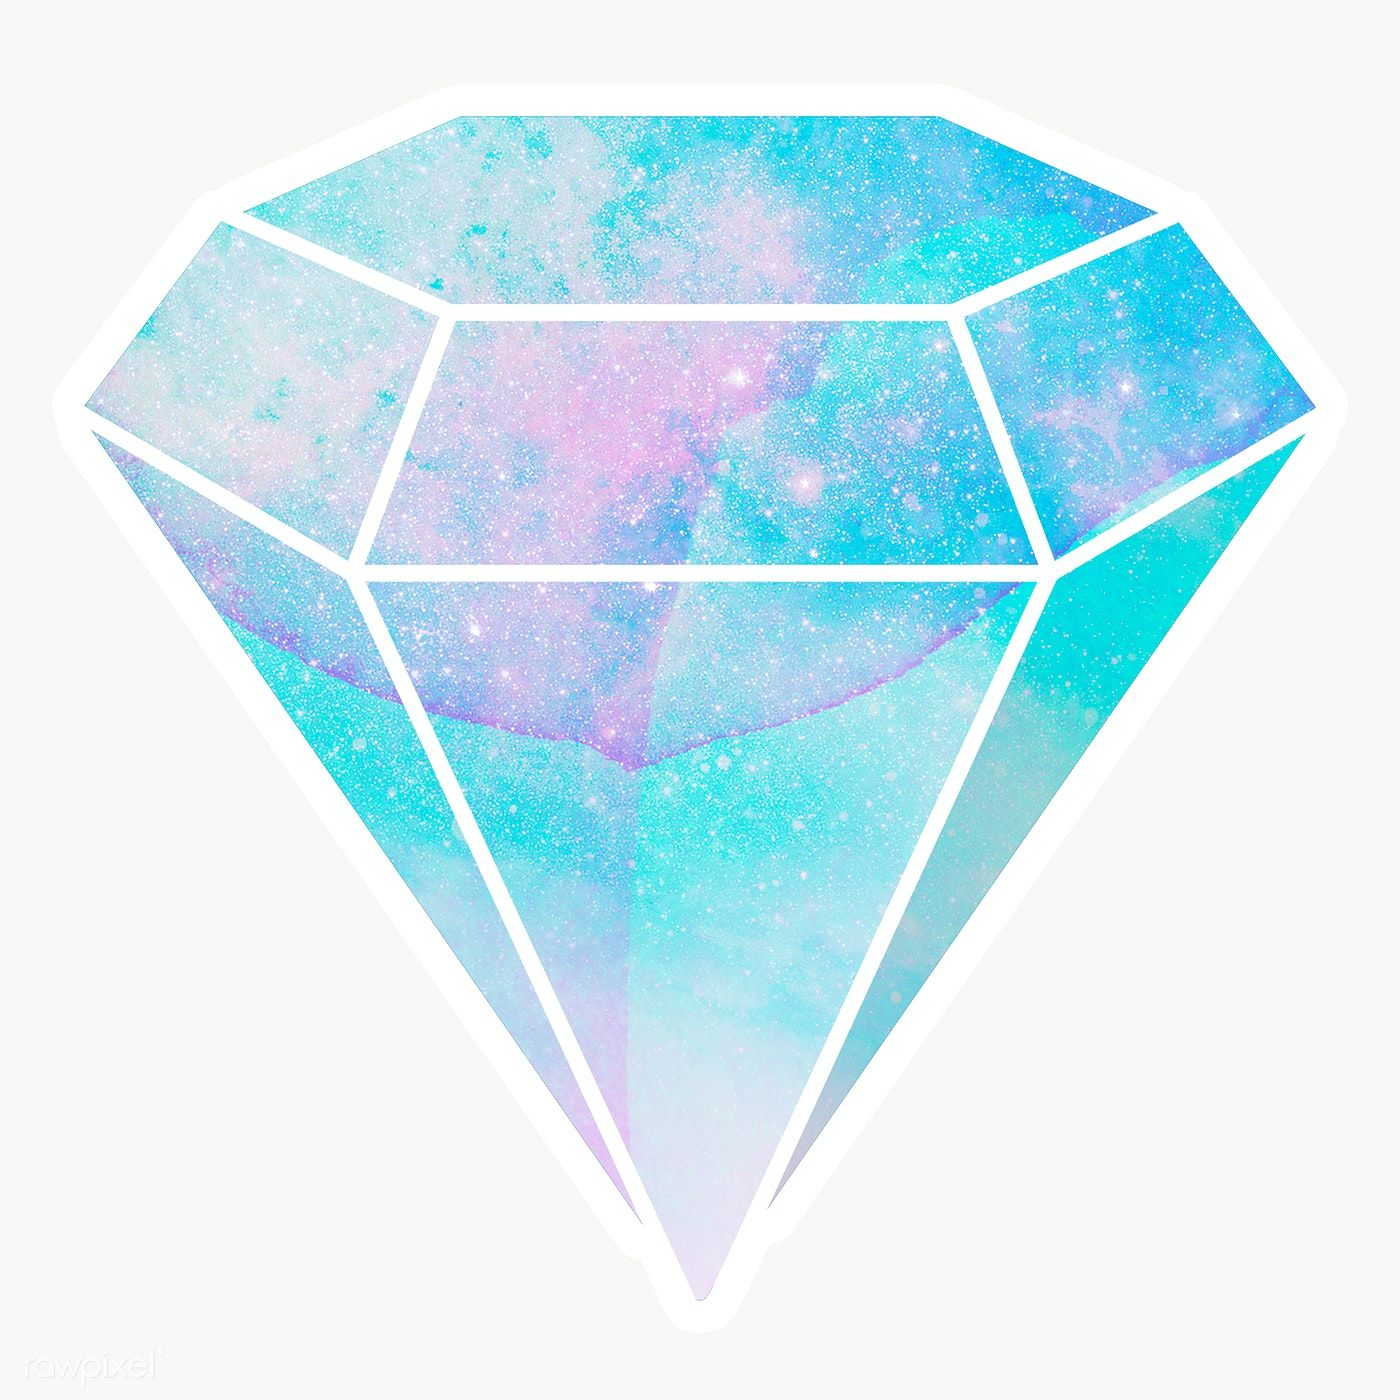 Download Premium Png Of Cerulean Blue Crystal Diamond Shaped Sticker With Diamond Illustration Diamond Crystal Diamond Shapes